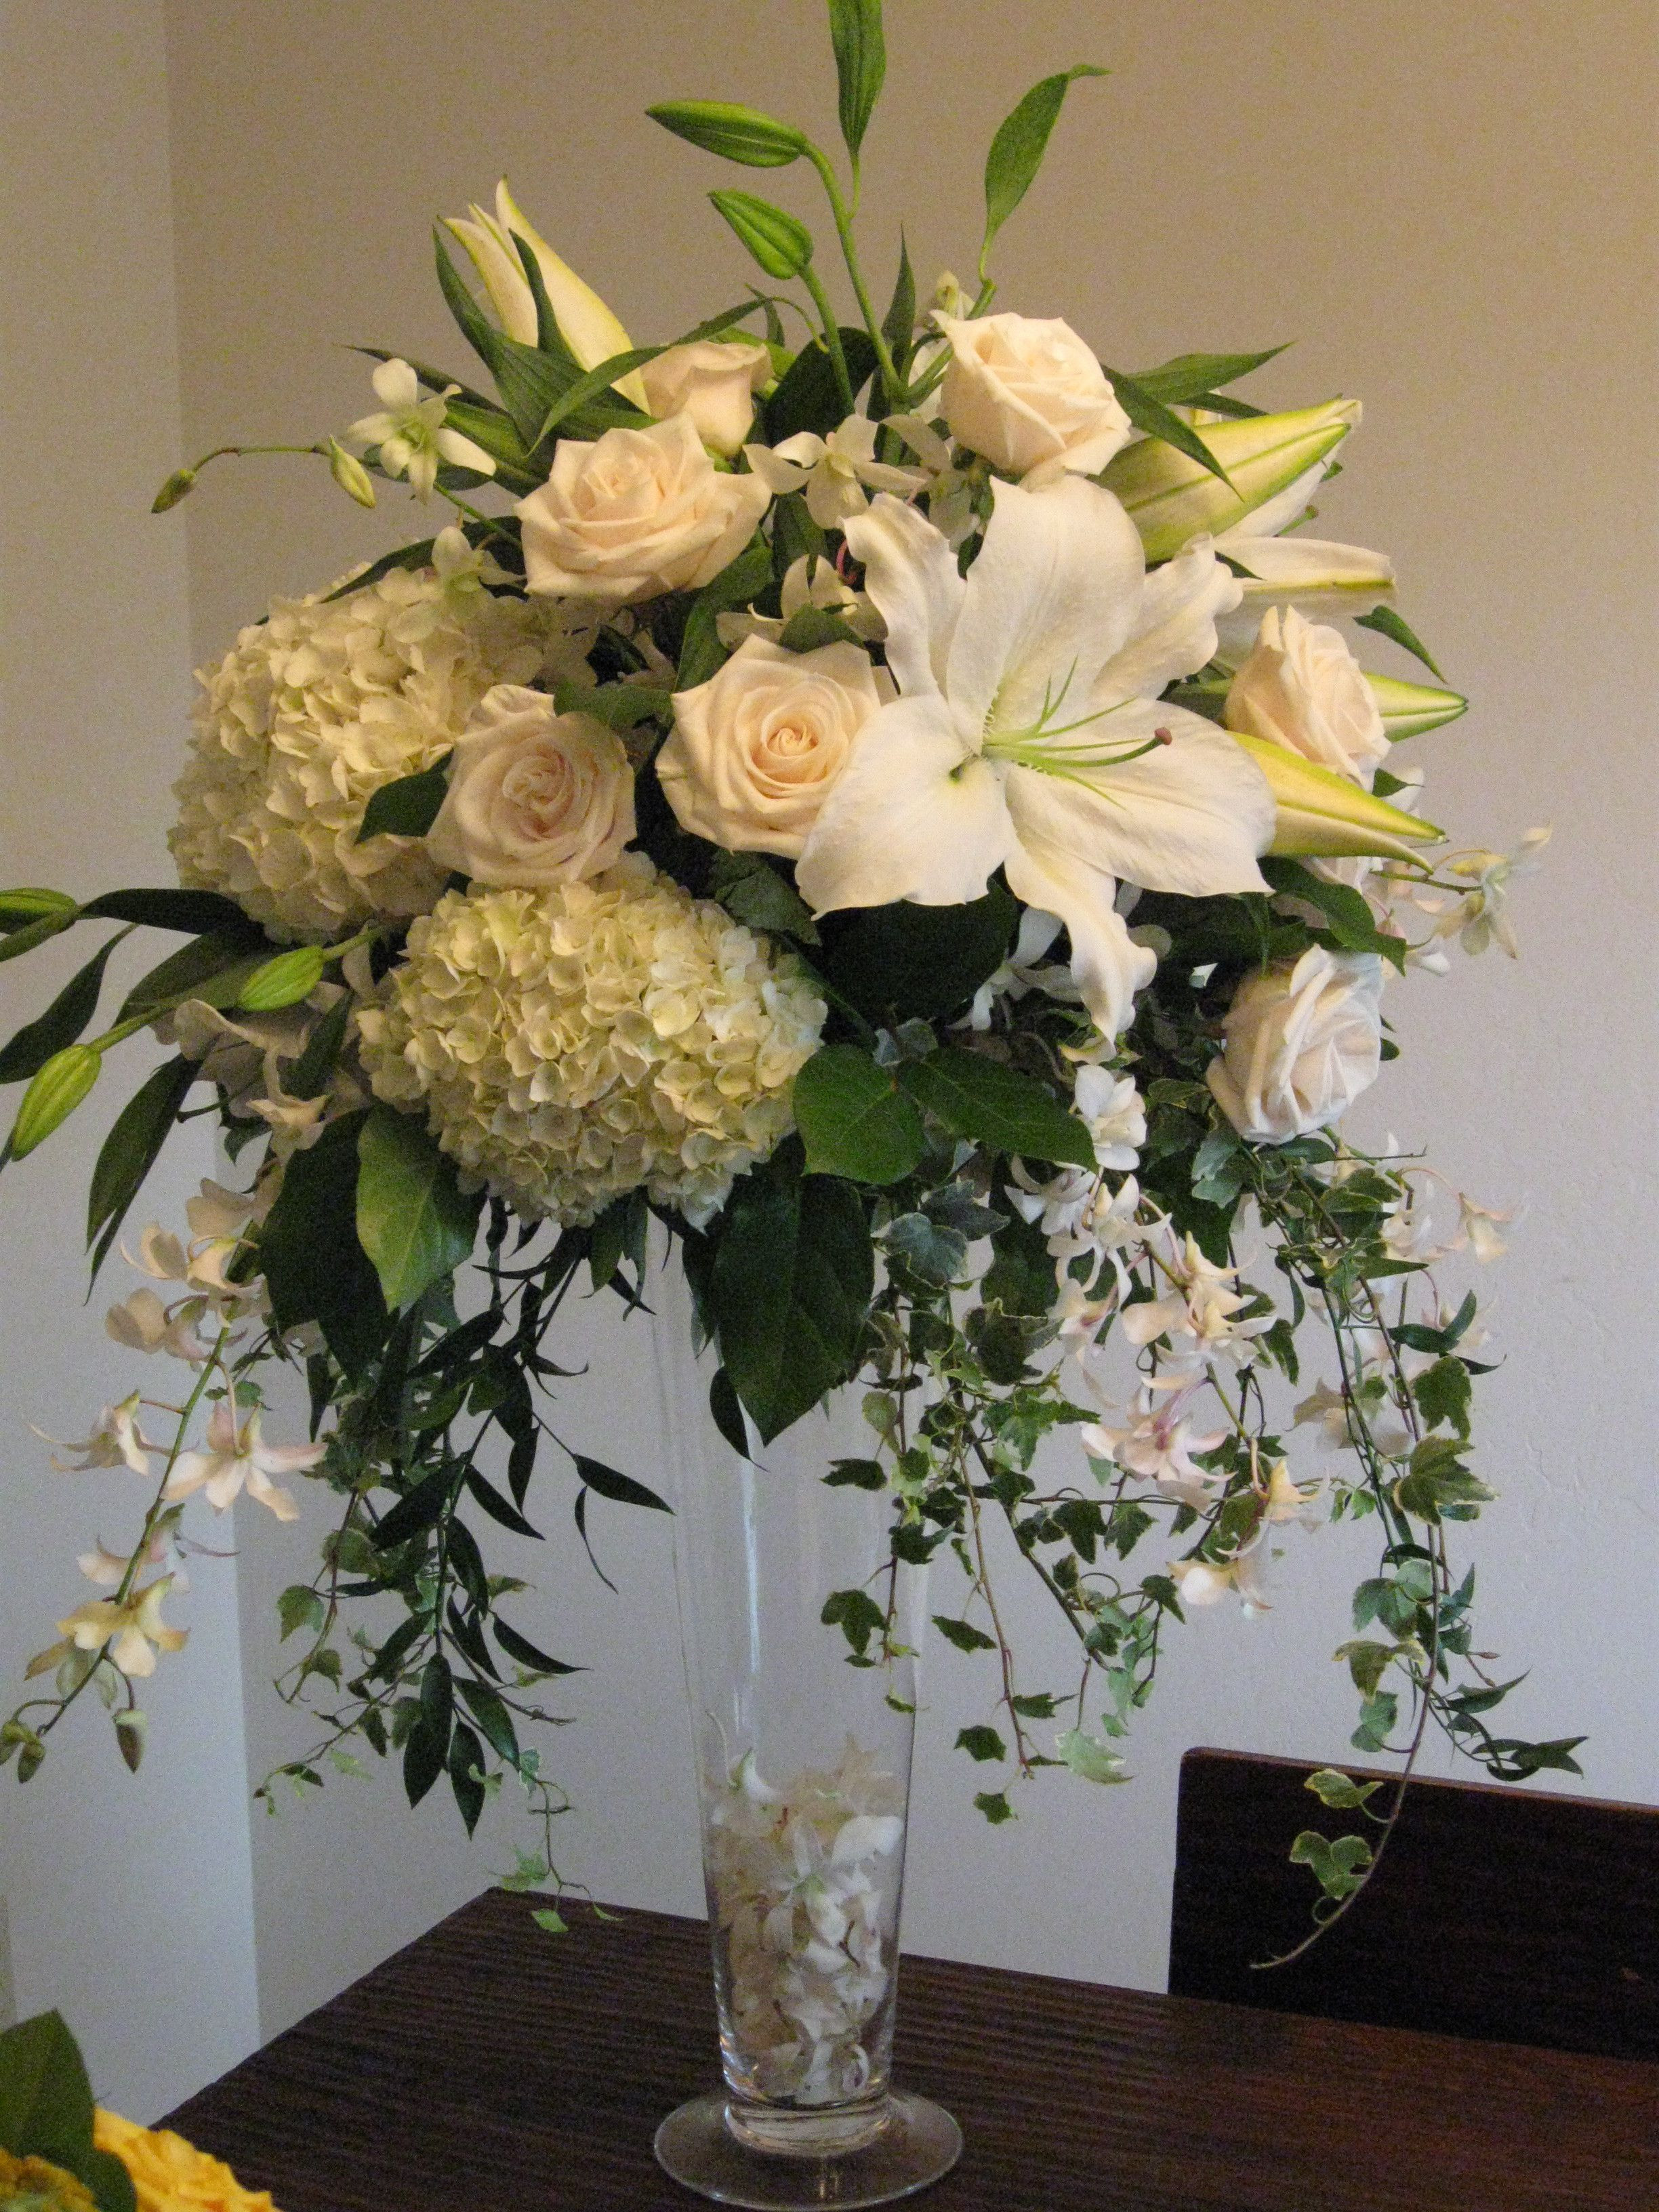 tall wedding vases for sale of centerpiece white roses hydrangea orchids tall vendela the regarding centerpiece white roses hydrangea orchids tall vendela the blue orchid dendrobium ivy casa